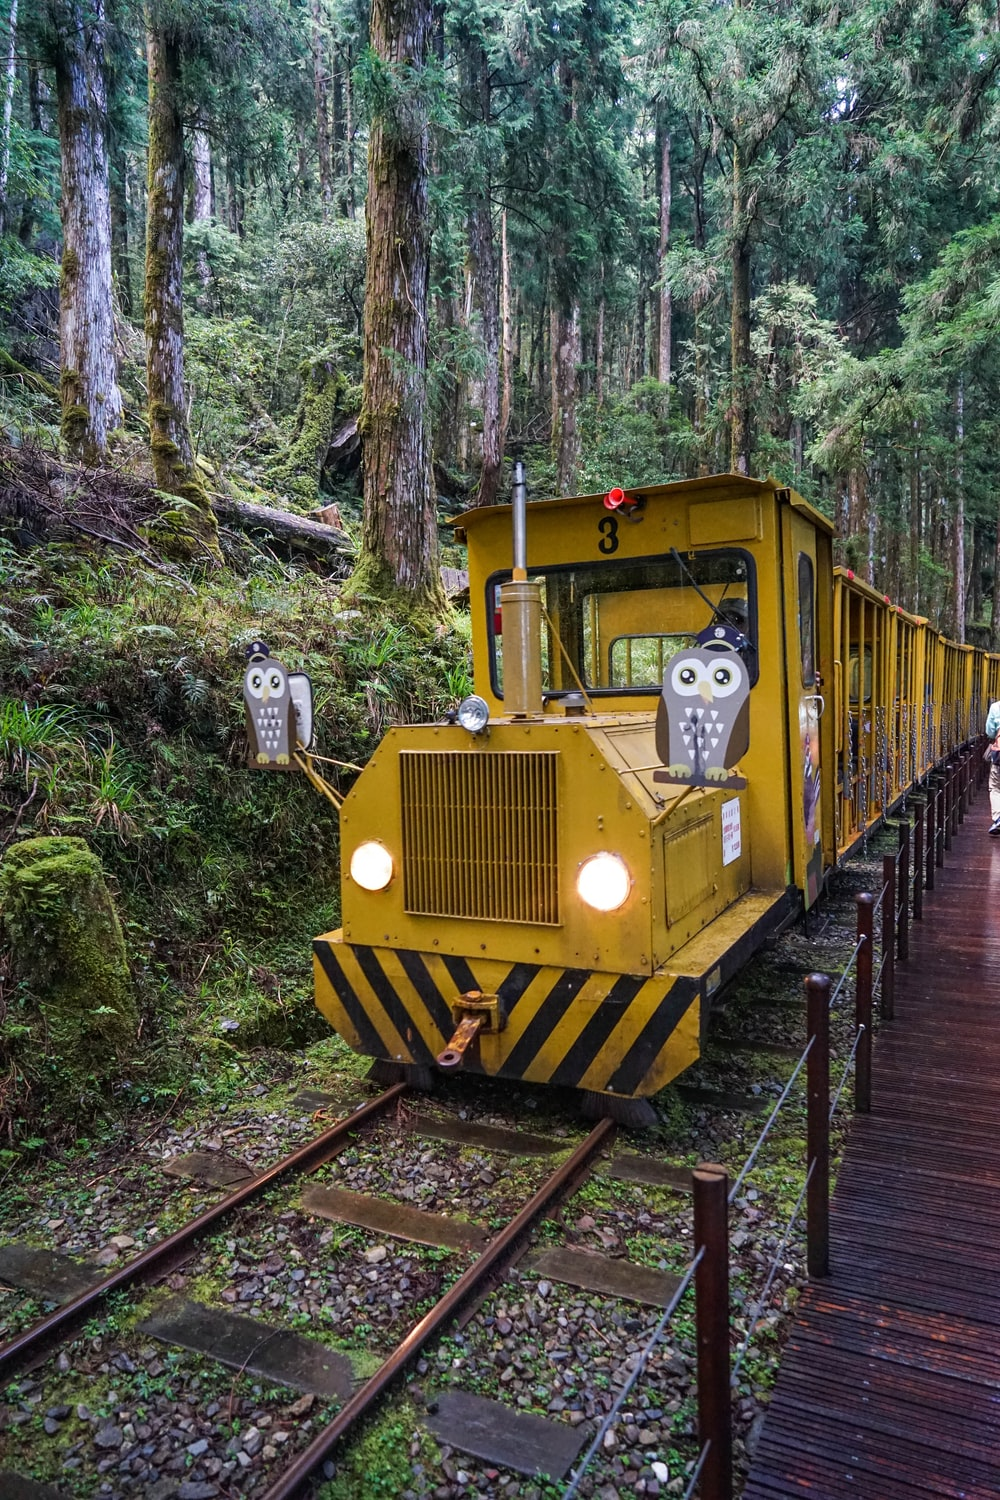 yellow train in the middle of the forest